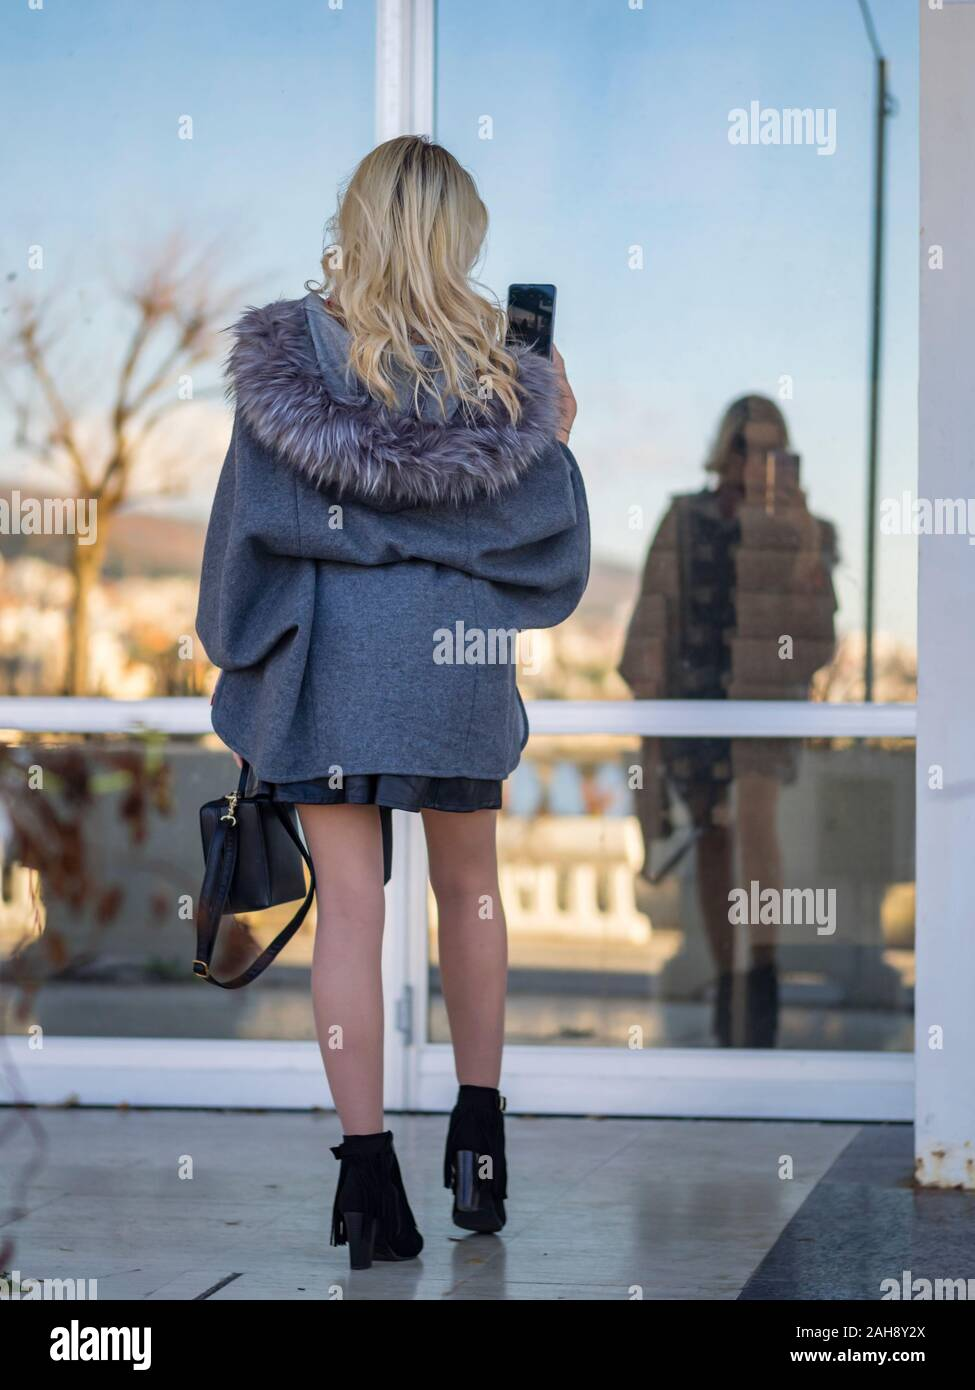 Fanciful blonde young lady is taking selfie in window glass reflection view from rear back behind Stock Photo